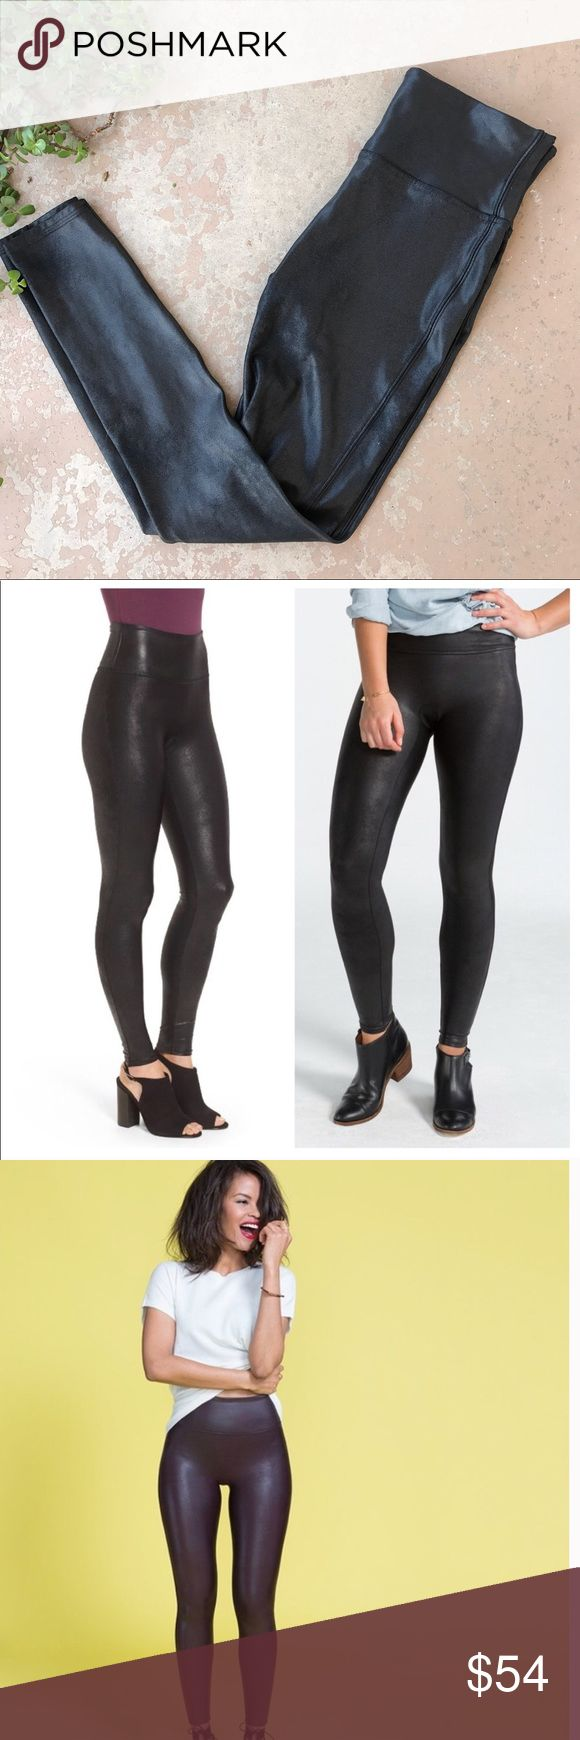 Spanx Black Coated Faux Leather Leggings In excellent condition Spanx black leggings with a coated/shiny faux leather look. Size large. SPANX Pants Leggings